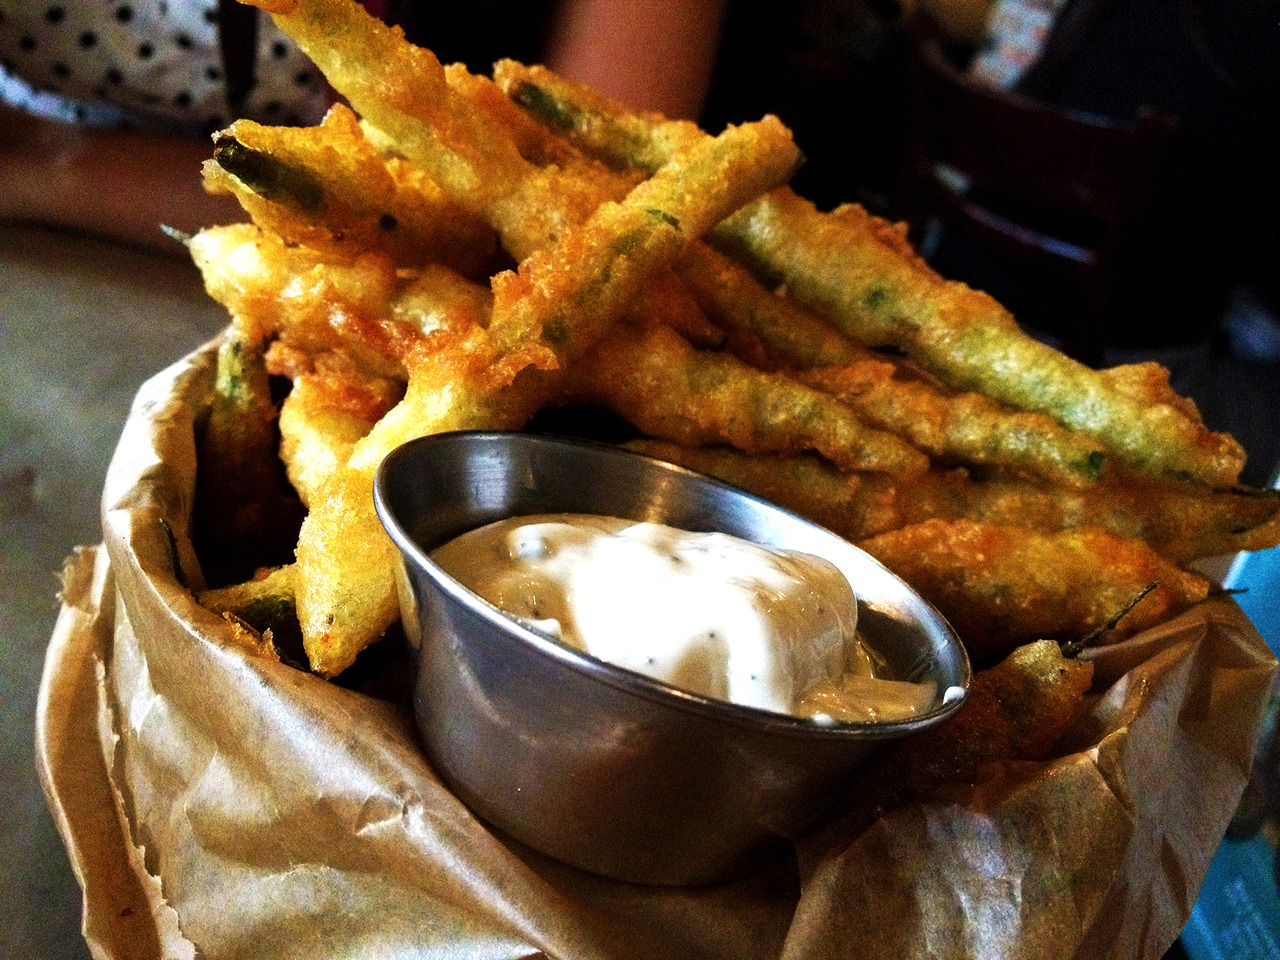 Beer & Burger's deep fried green pea fries. Best way to eat your greens: deep fry 'em. -Braised Bombshell